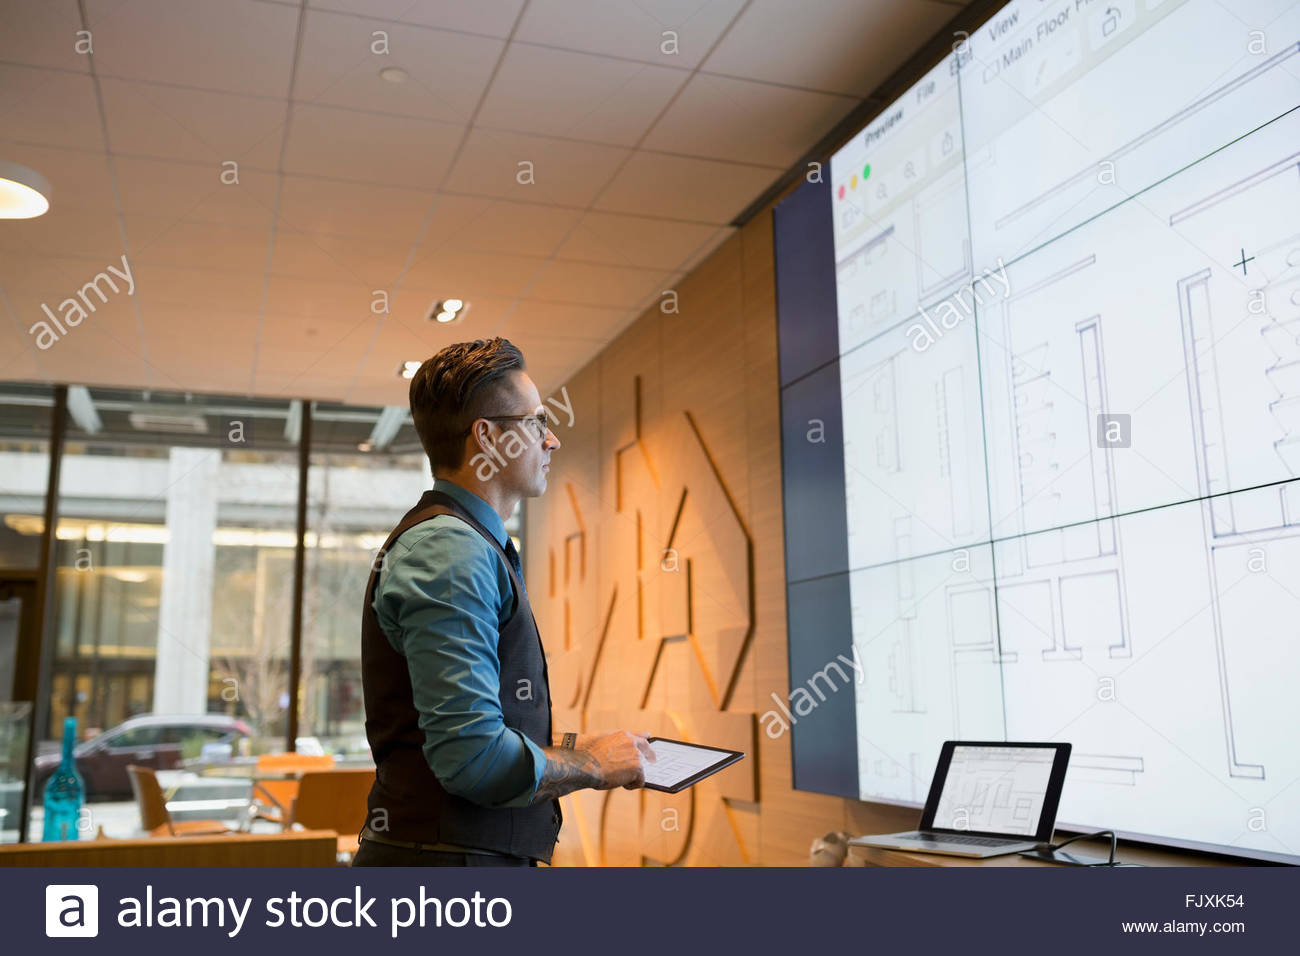 Architect preparing audio visual presentation in conference room - Stock Image